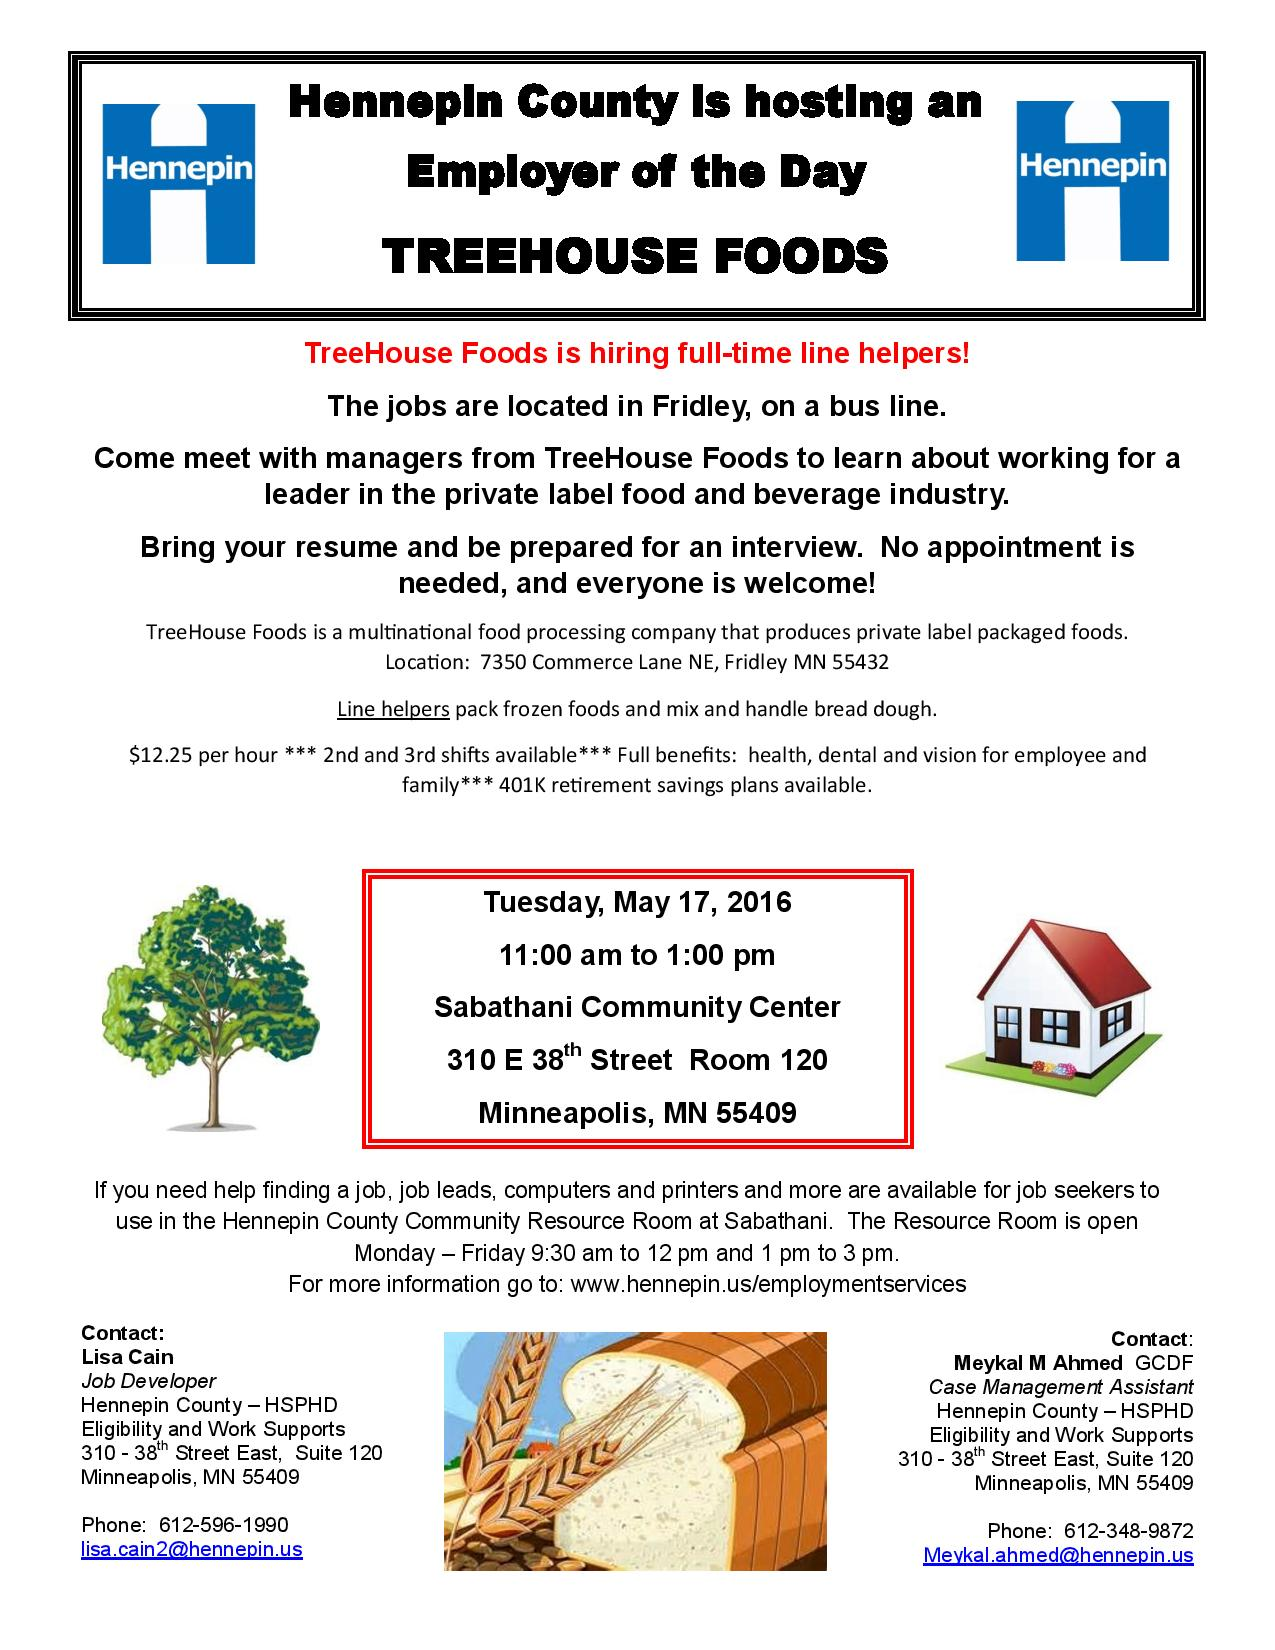 EOD-TreeHouse-Flyer-2016-05-17-page-001.jpg